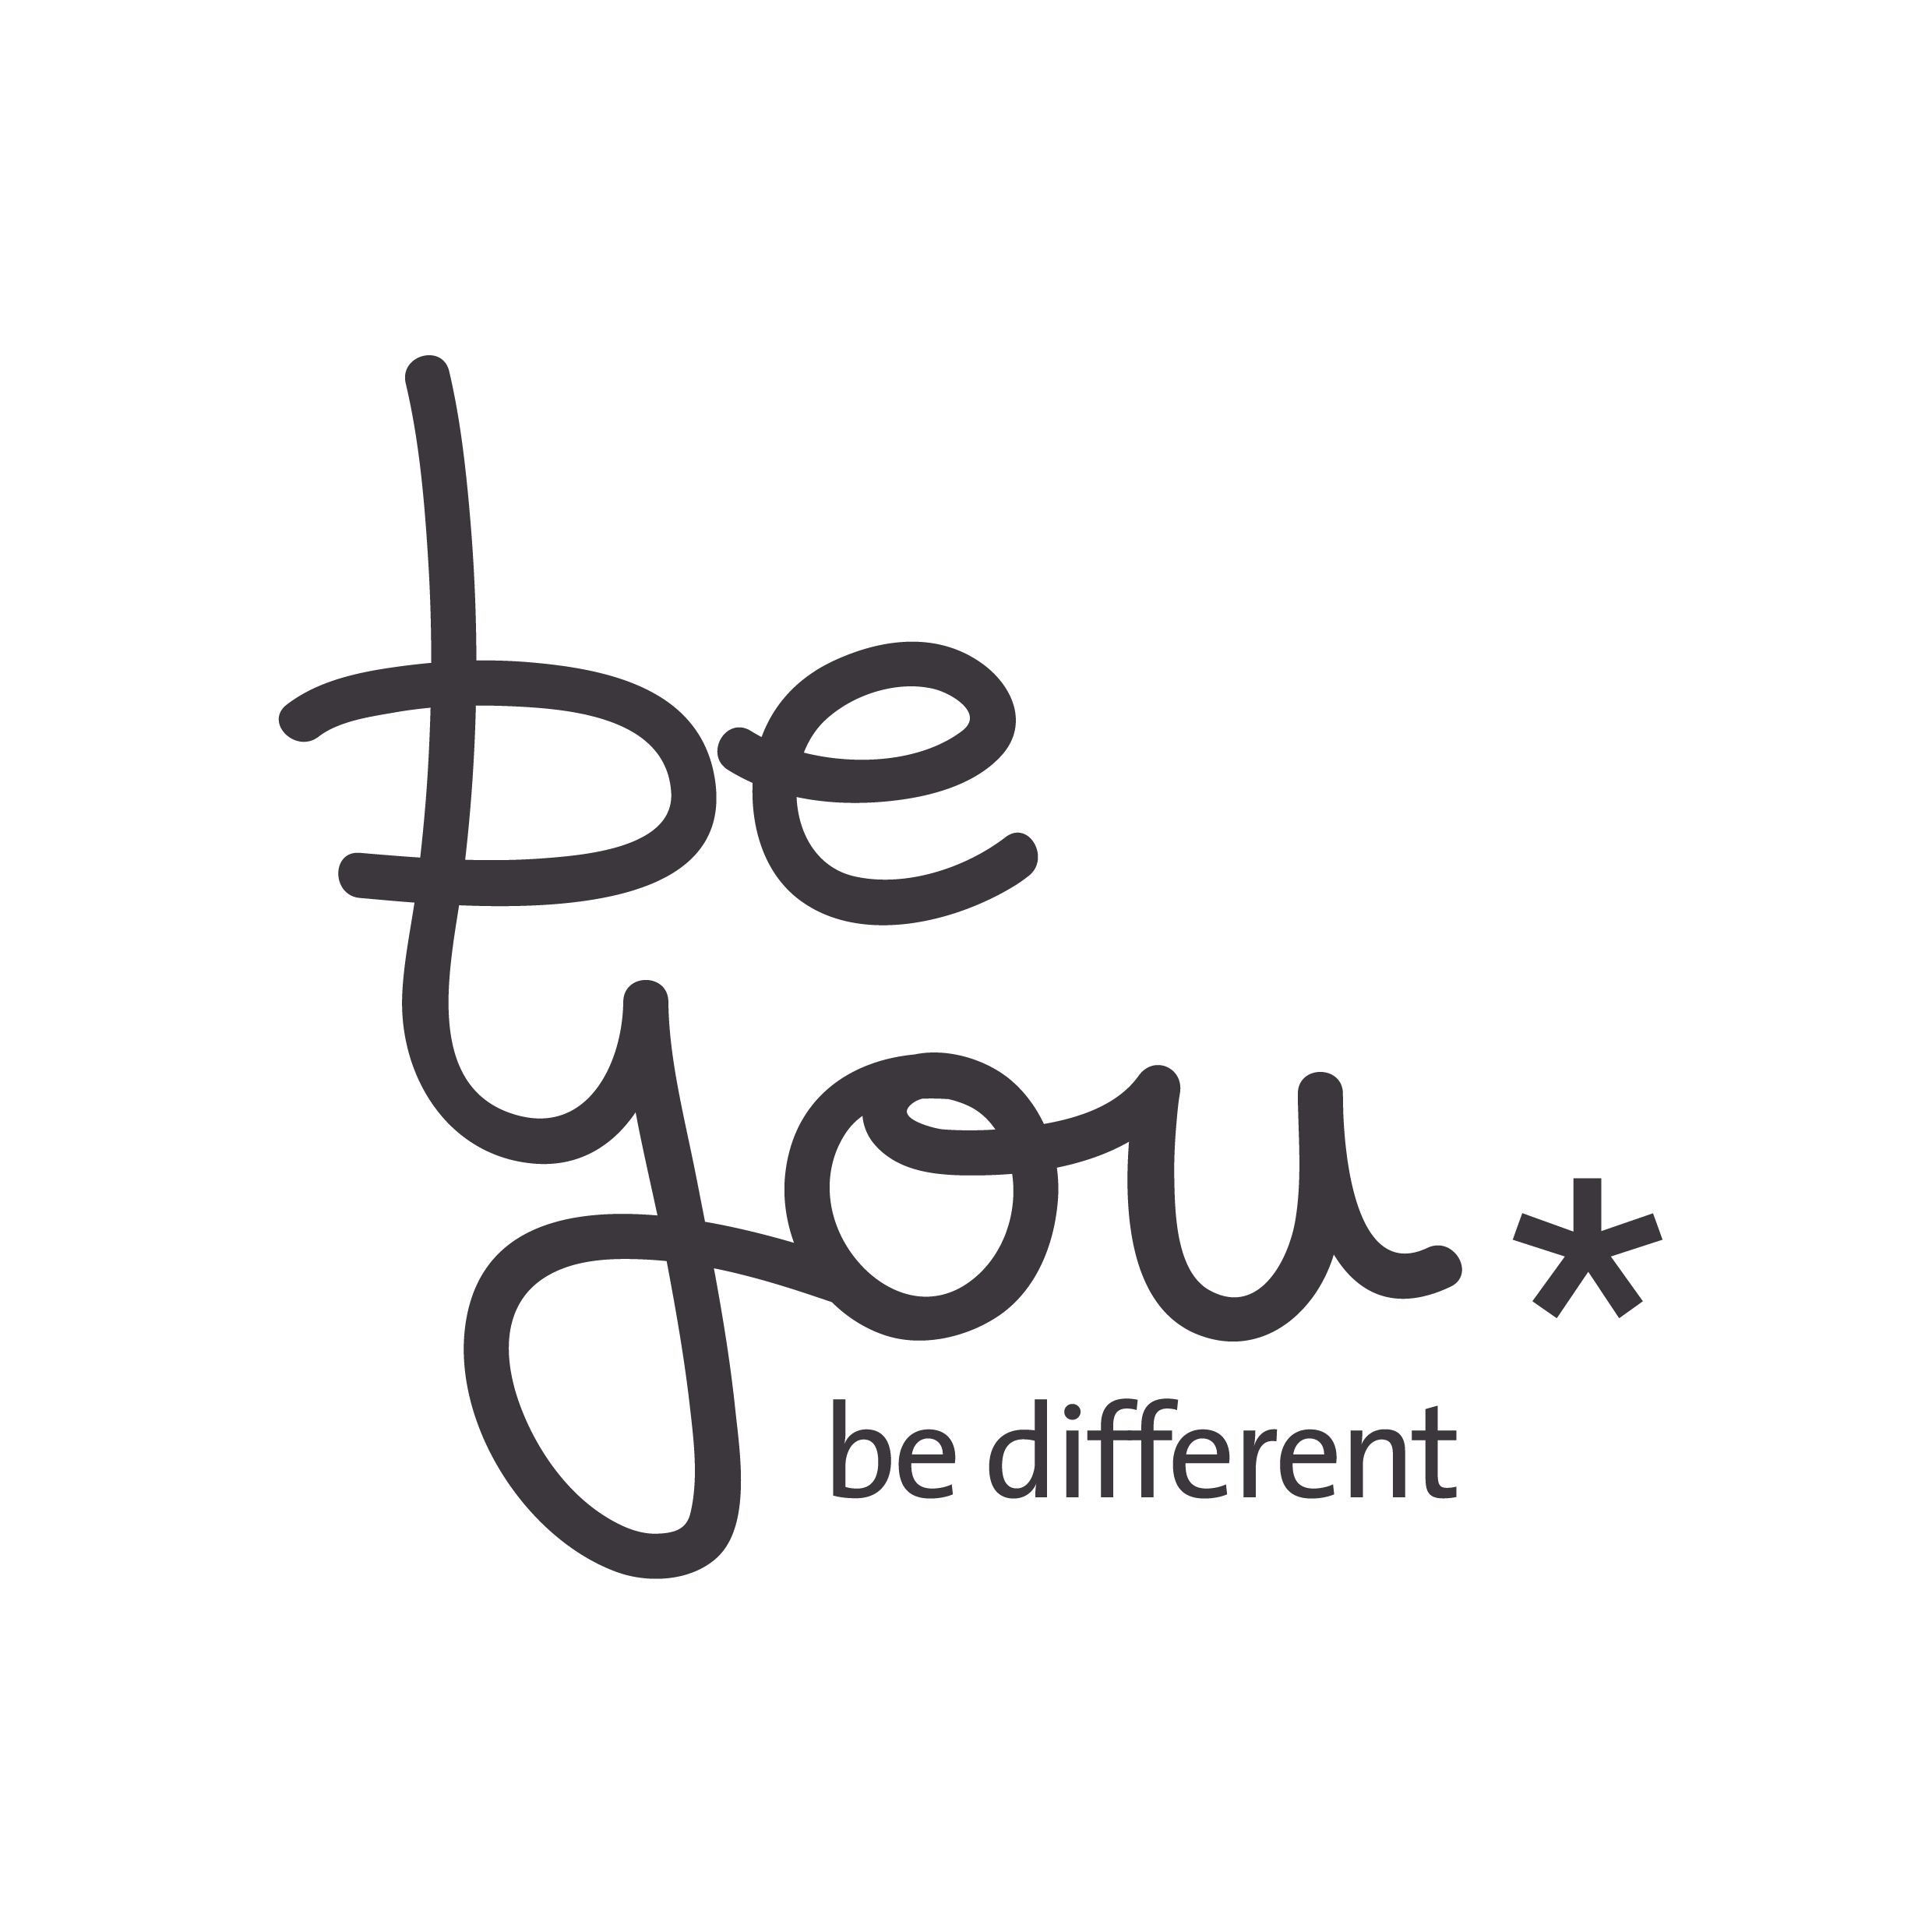 Escuela Desarrollo Be You Be Different